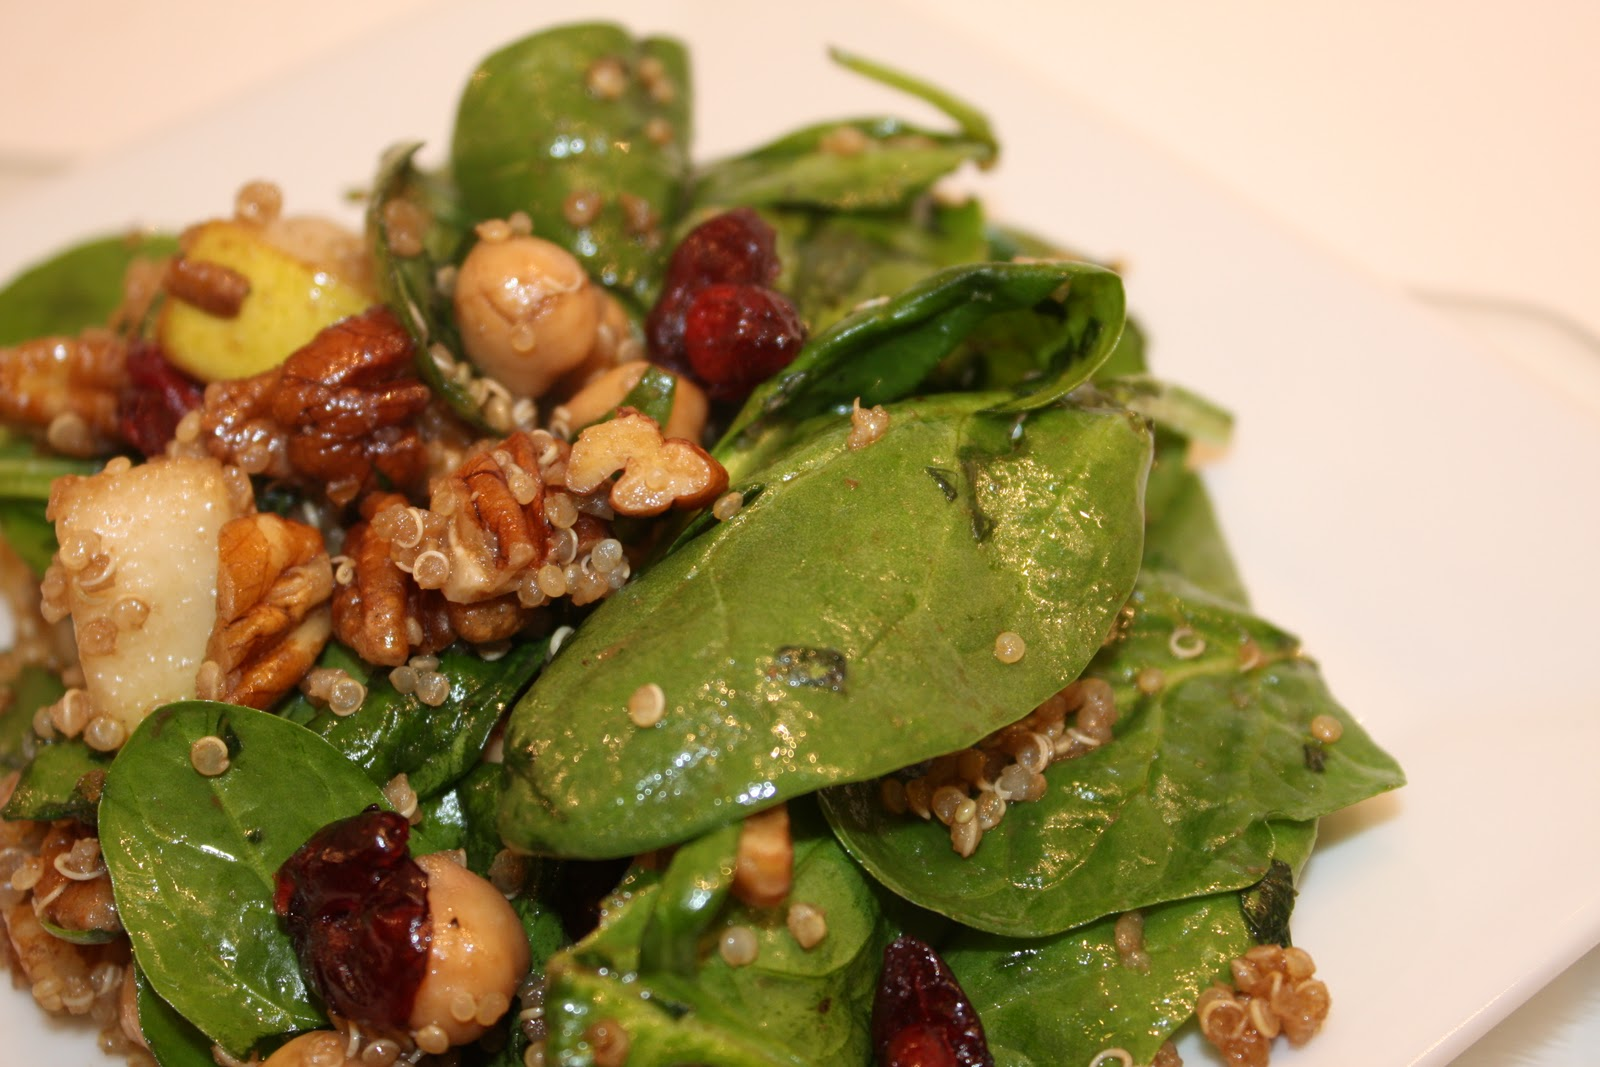 ... Crumbles...: Spinach + Quinoa Salad with Pears, Chickpeas and Pecans